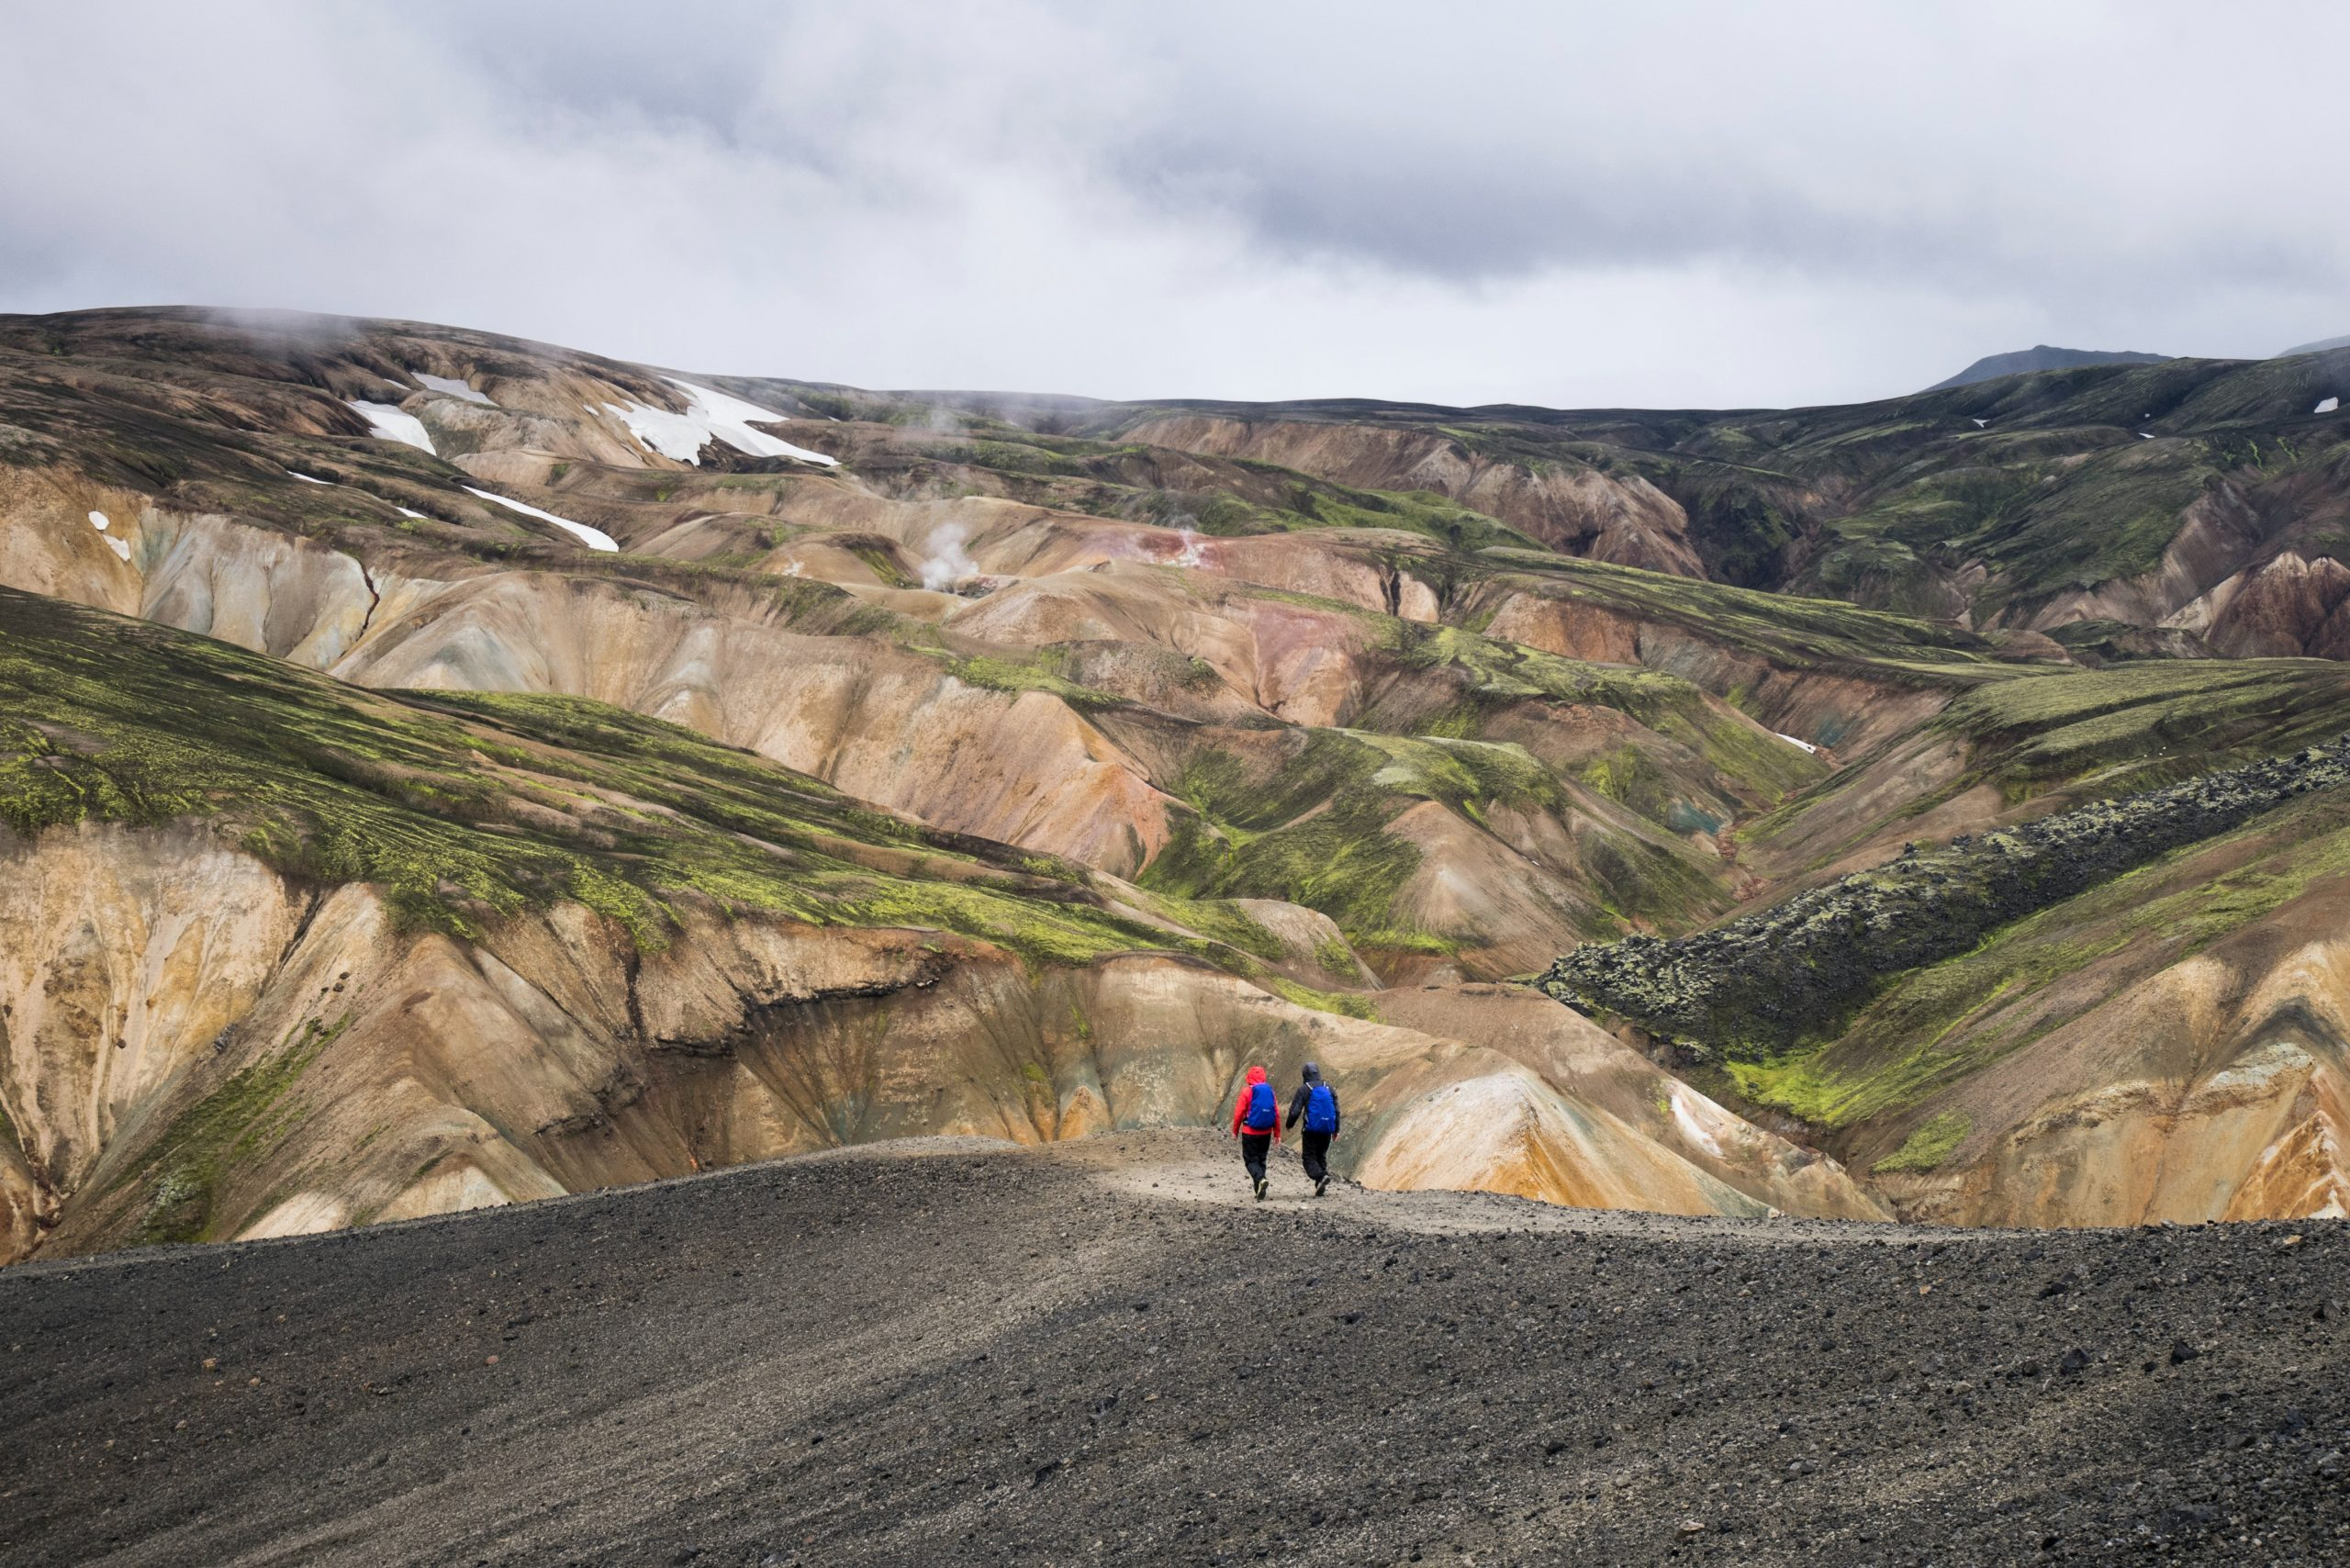 Two people hiking in the Landmannalaugar Region in Iceland's Highlands.